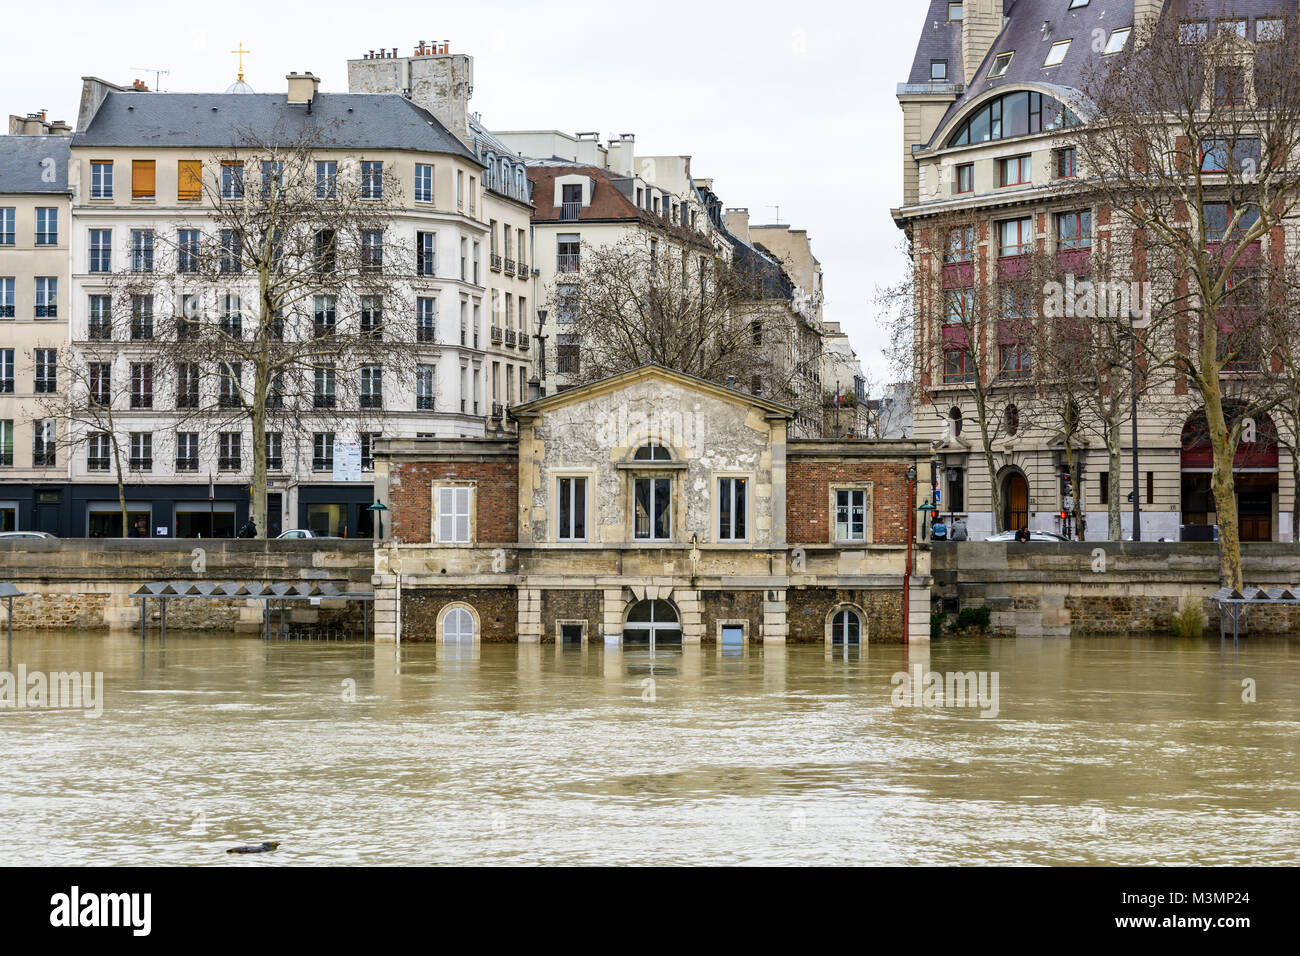 Paris, France - January 29, 2018: The house of the Celestins, former house of the inland water shipping service, Stock Photo